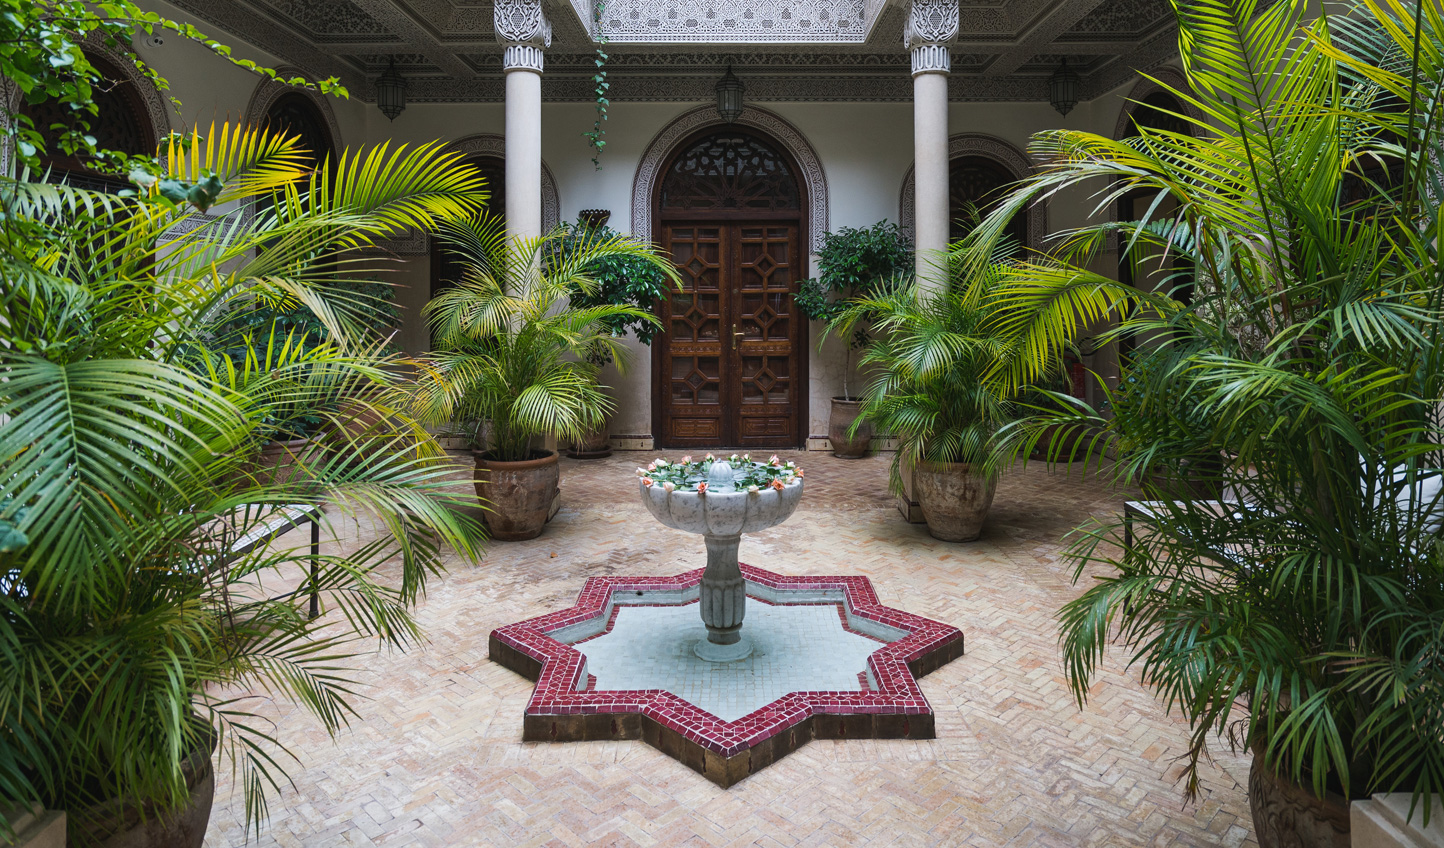 Spend a quite moment in beautiful riads hidden just off the medina